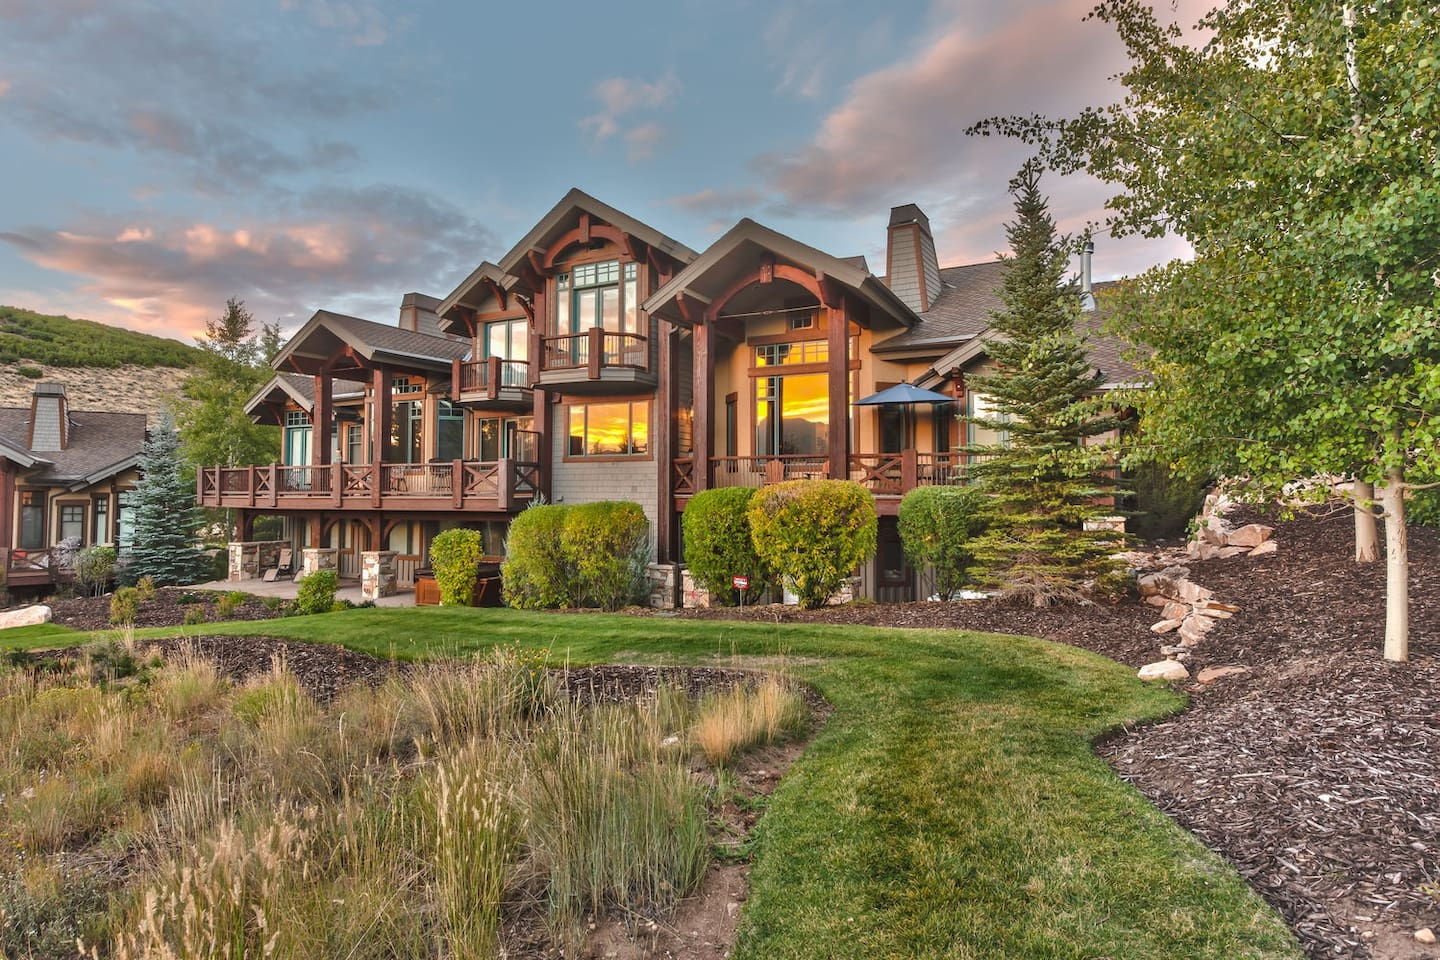 Park City Mountain View - A 4,391 Square Foot Home Located in Park Meadows with Four Bedrooms - All with Private Bathrooms